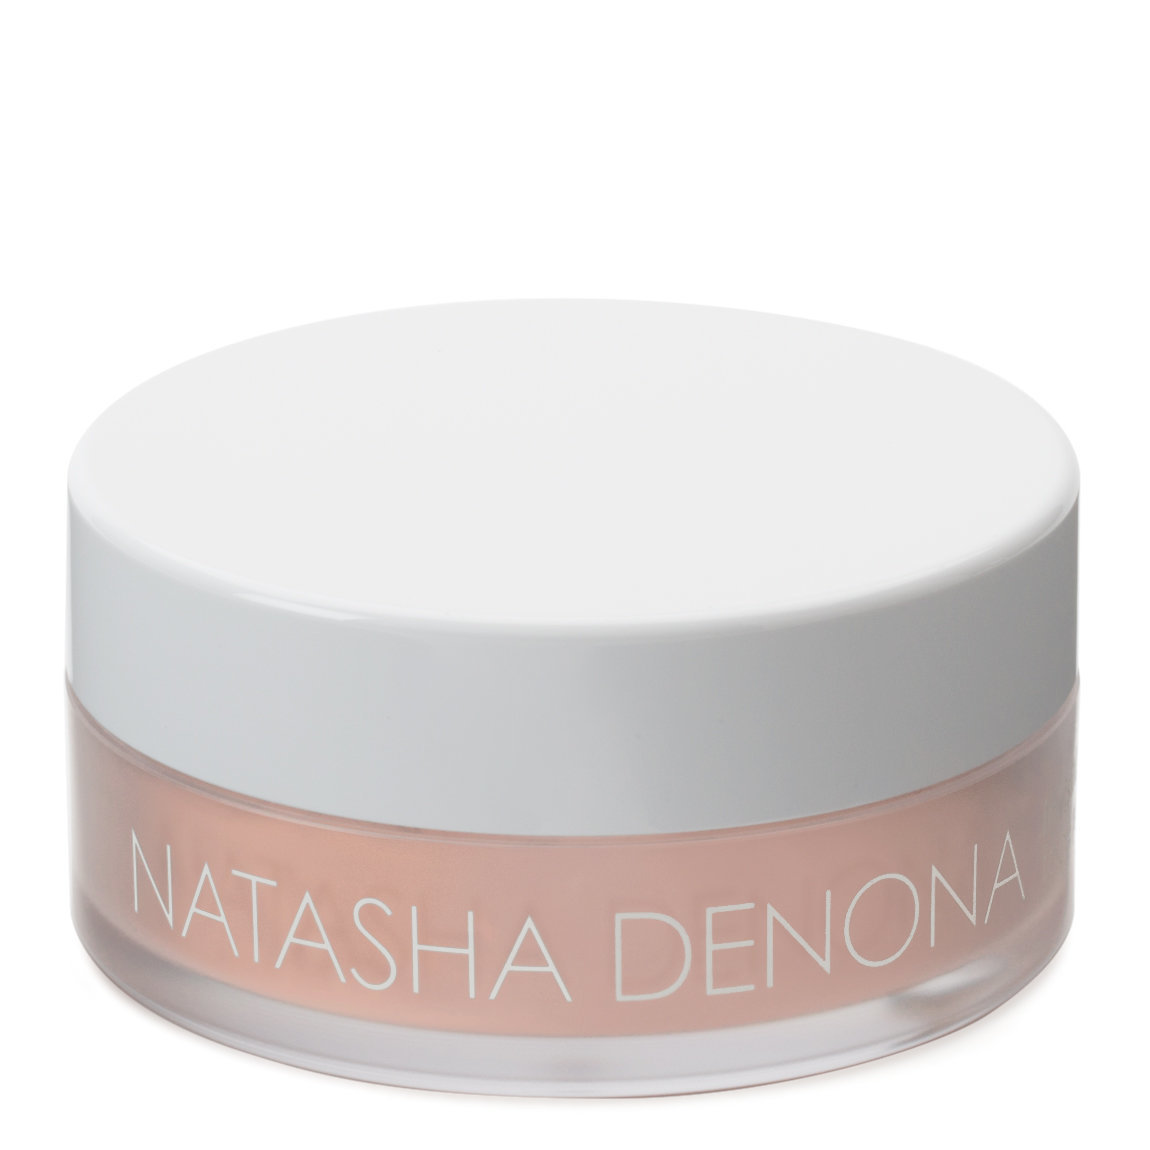 Natasha Denona Invisible HD Face Powder 01 Light Medium